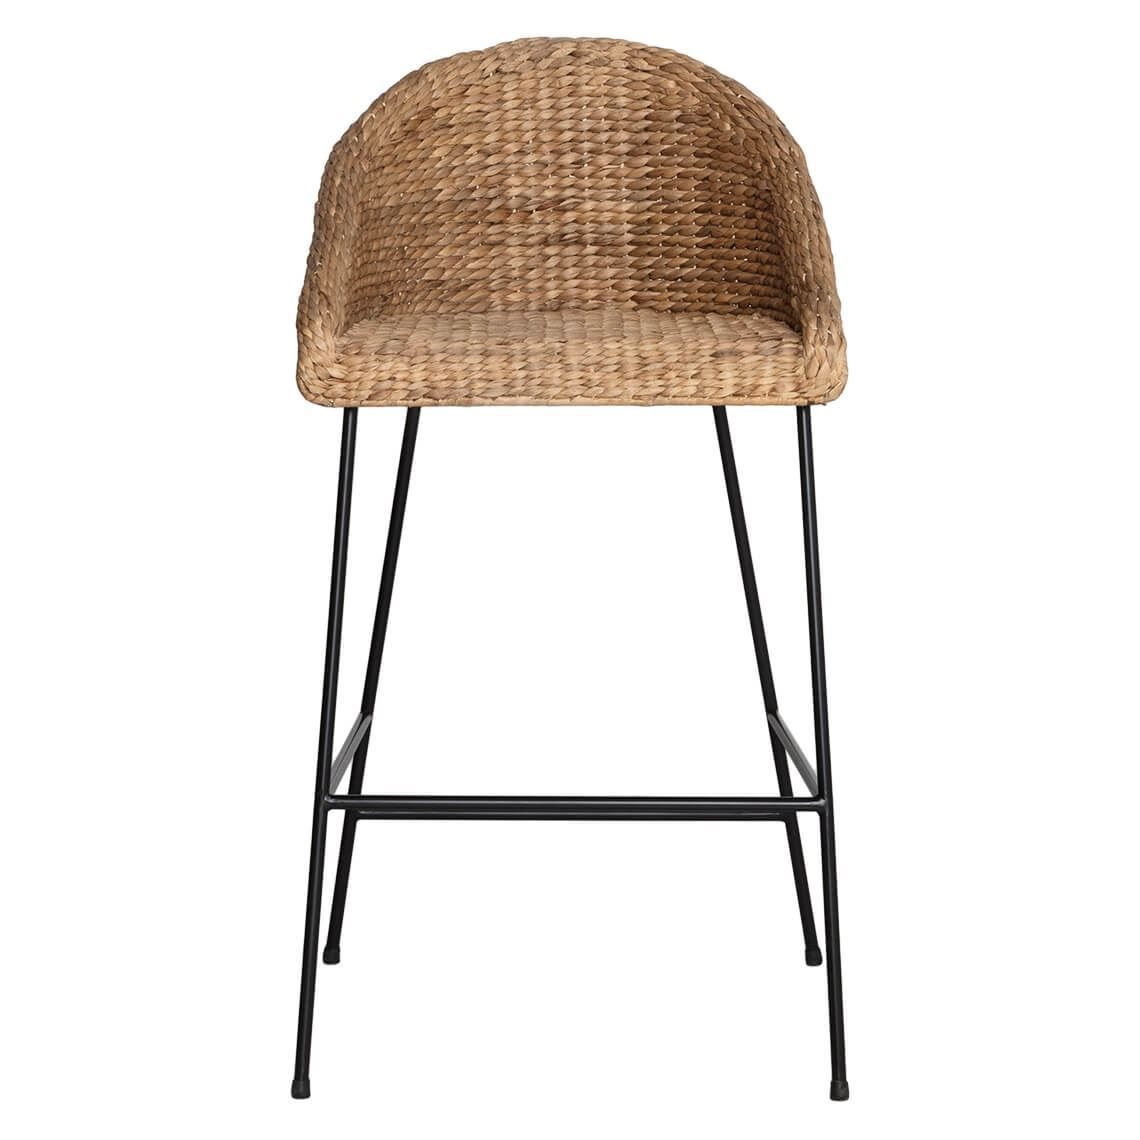 Delfina Bar Stool Natural Black Wicker Bar Stools Bar Stools Rattan Bar Stools